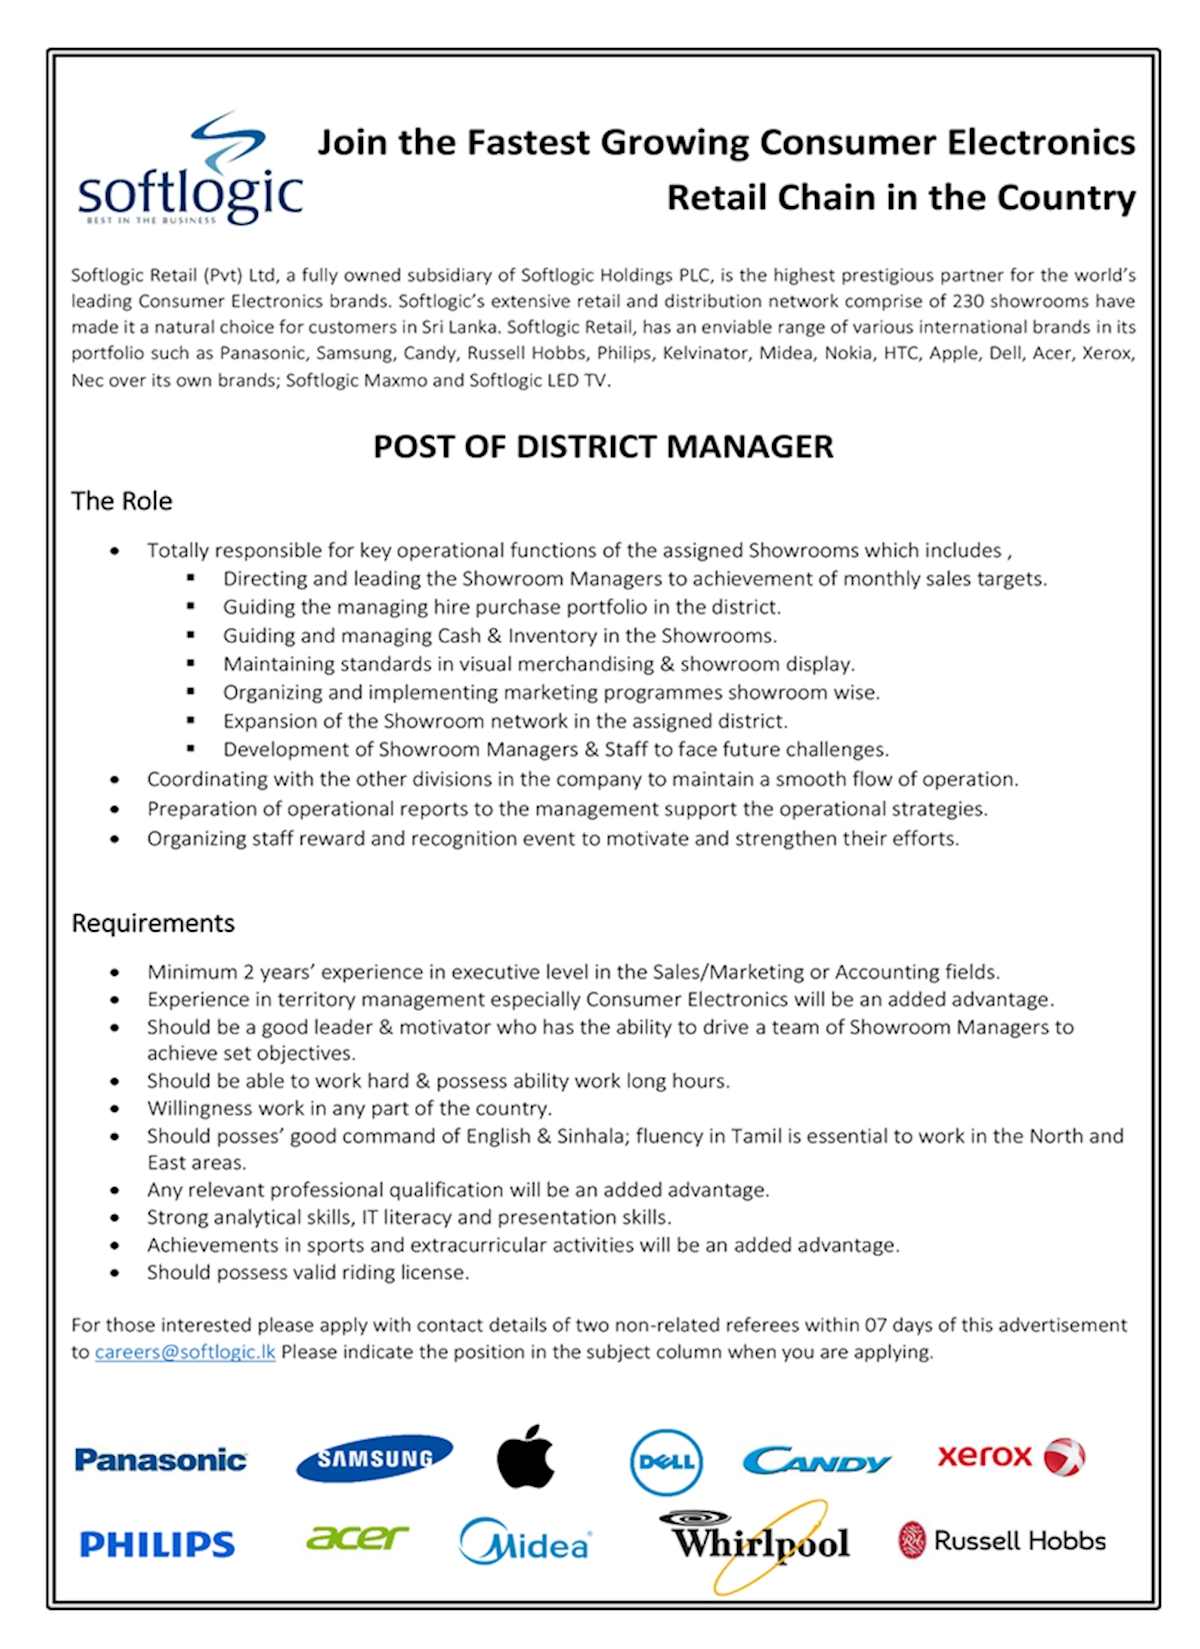 Post of District Manager at Softlogic Holdings PLC